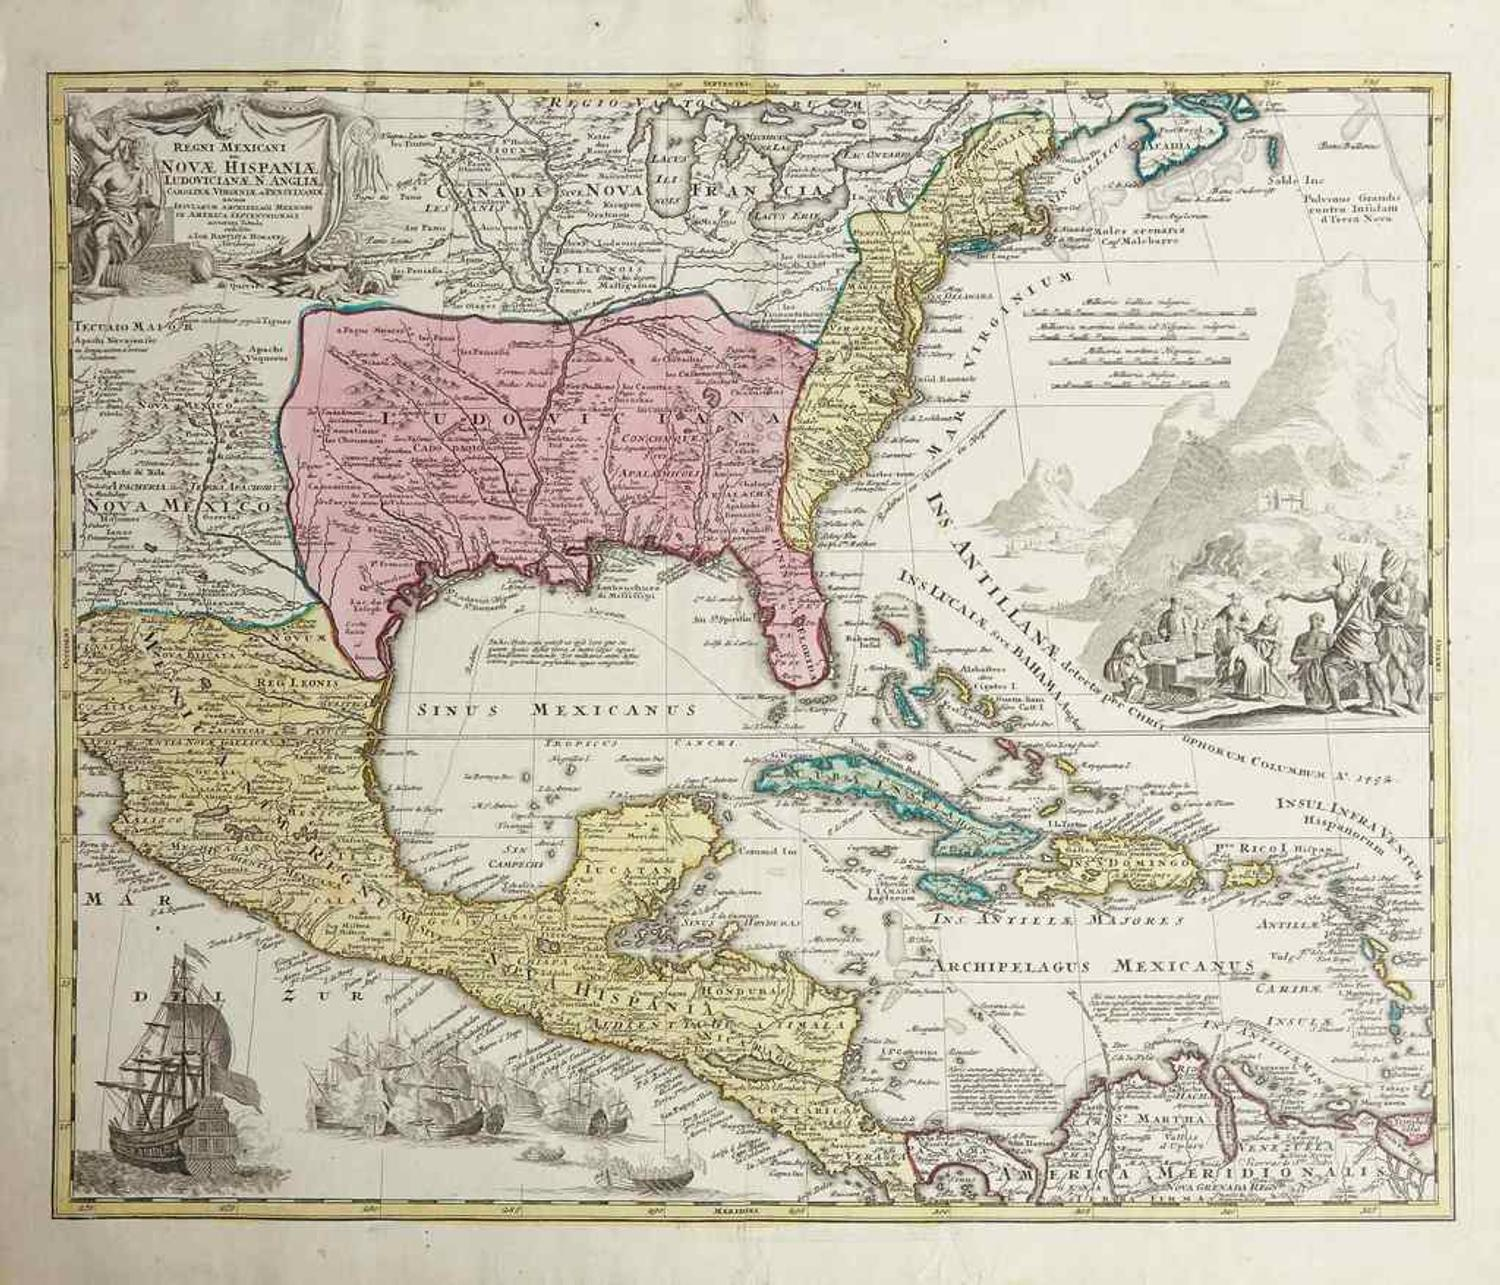 Rare, historical maps will be sold in Crescent City's two